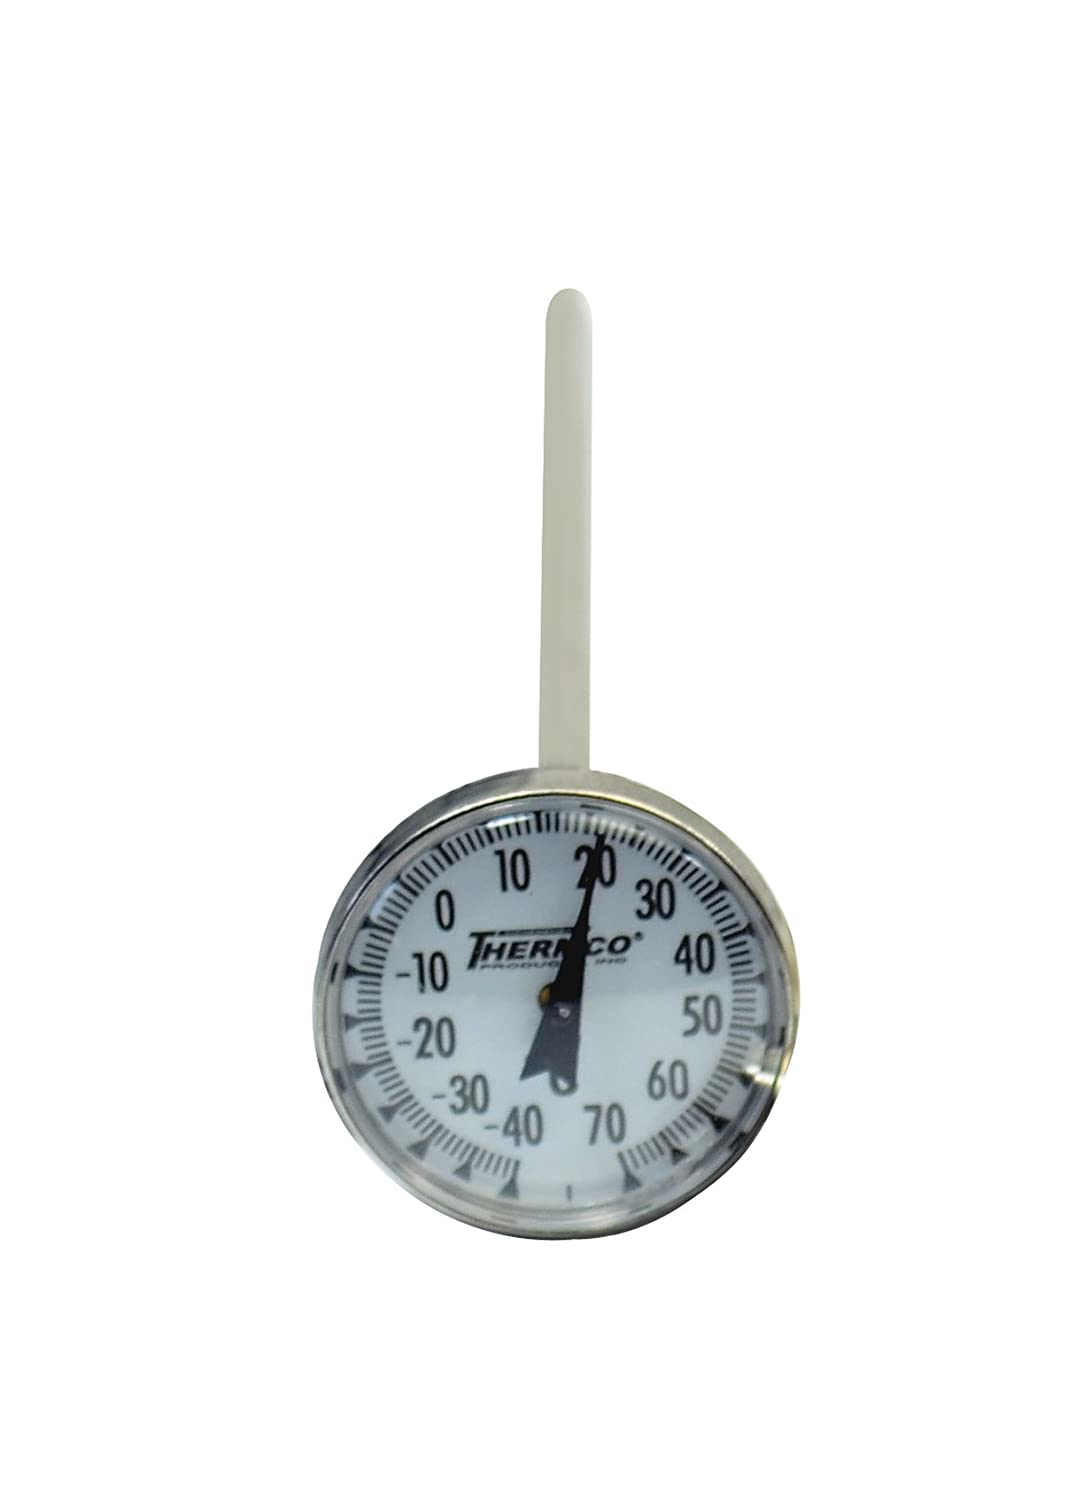 50/° to 400/°F Range 2 Immersion 1-3//4 Dial Size 8 Stems with No Cover 2 Immersion Thermco Products Inc. Thermco ACCGG400F Bi-Metal Dial Laboratory Thermometer 8 Stems with No Cover 1-3//4 Dial Size